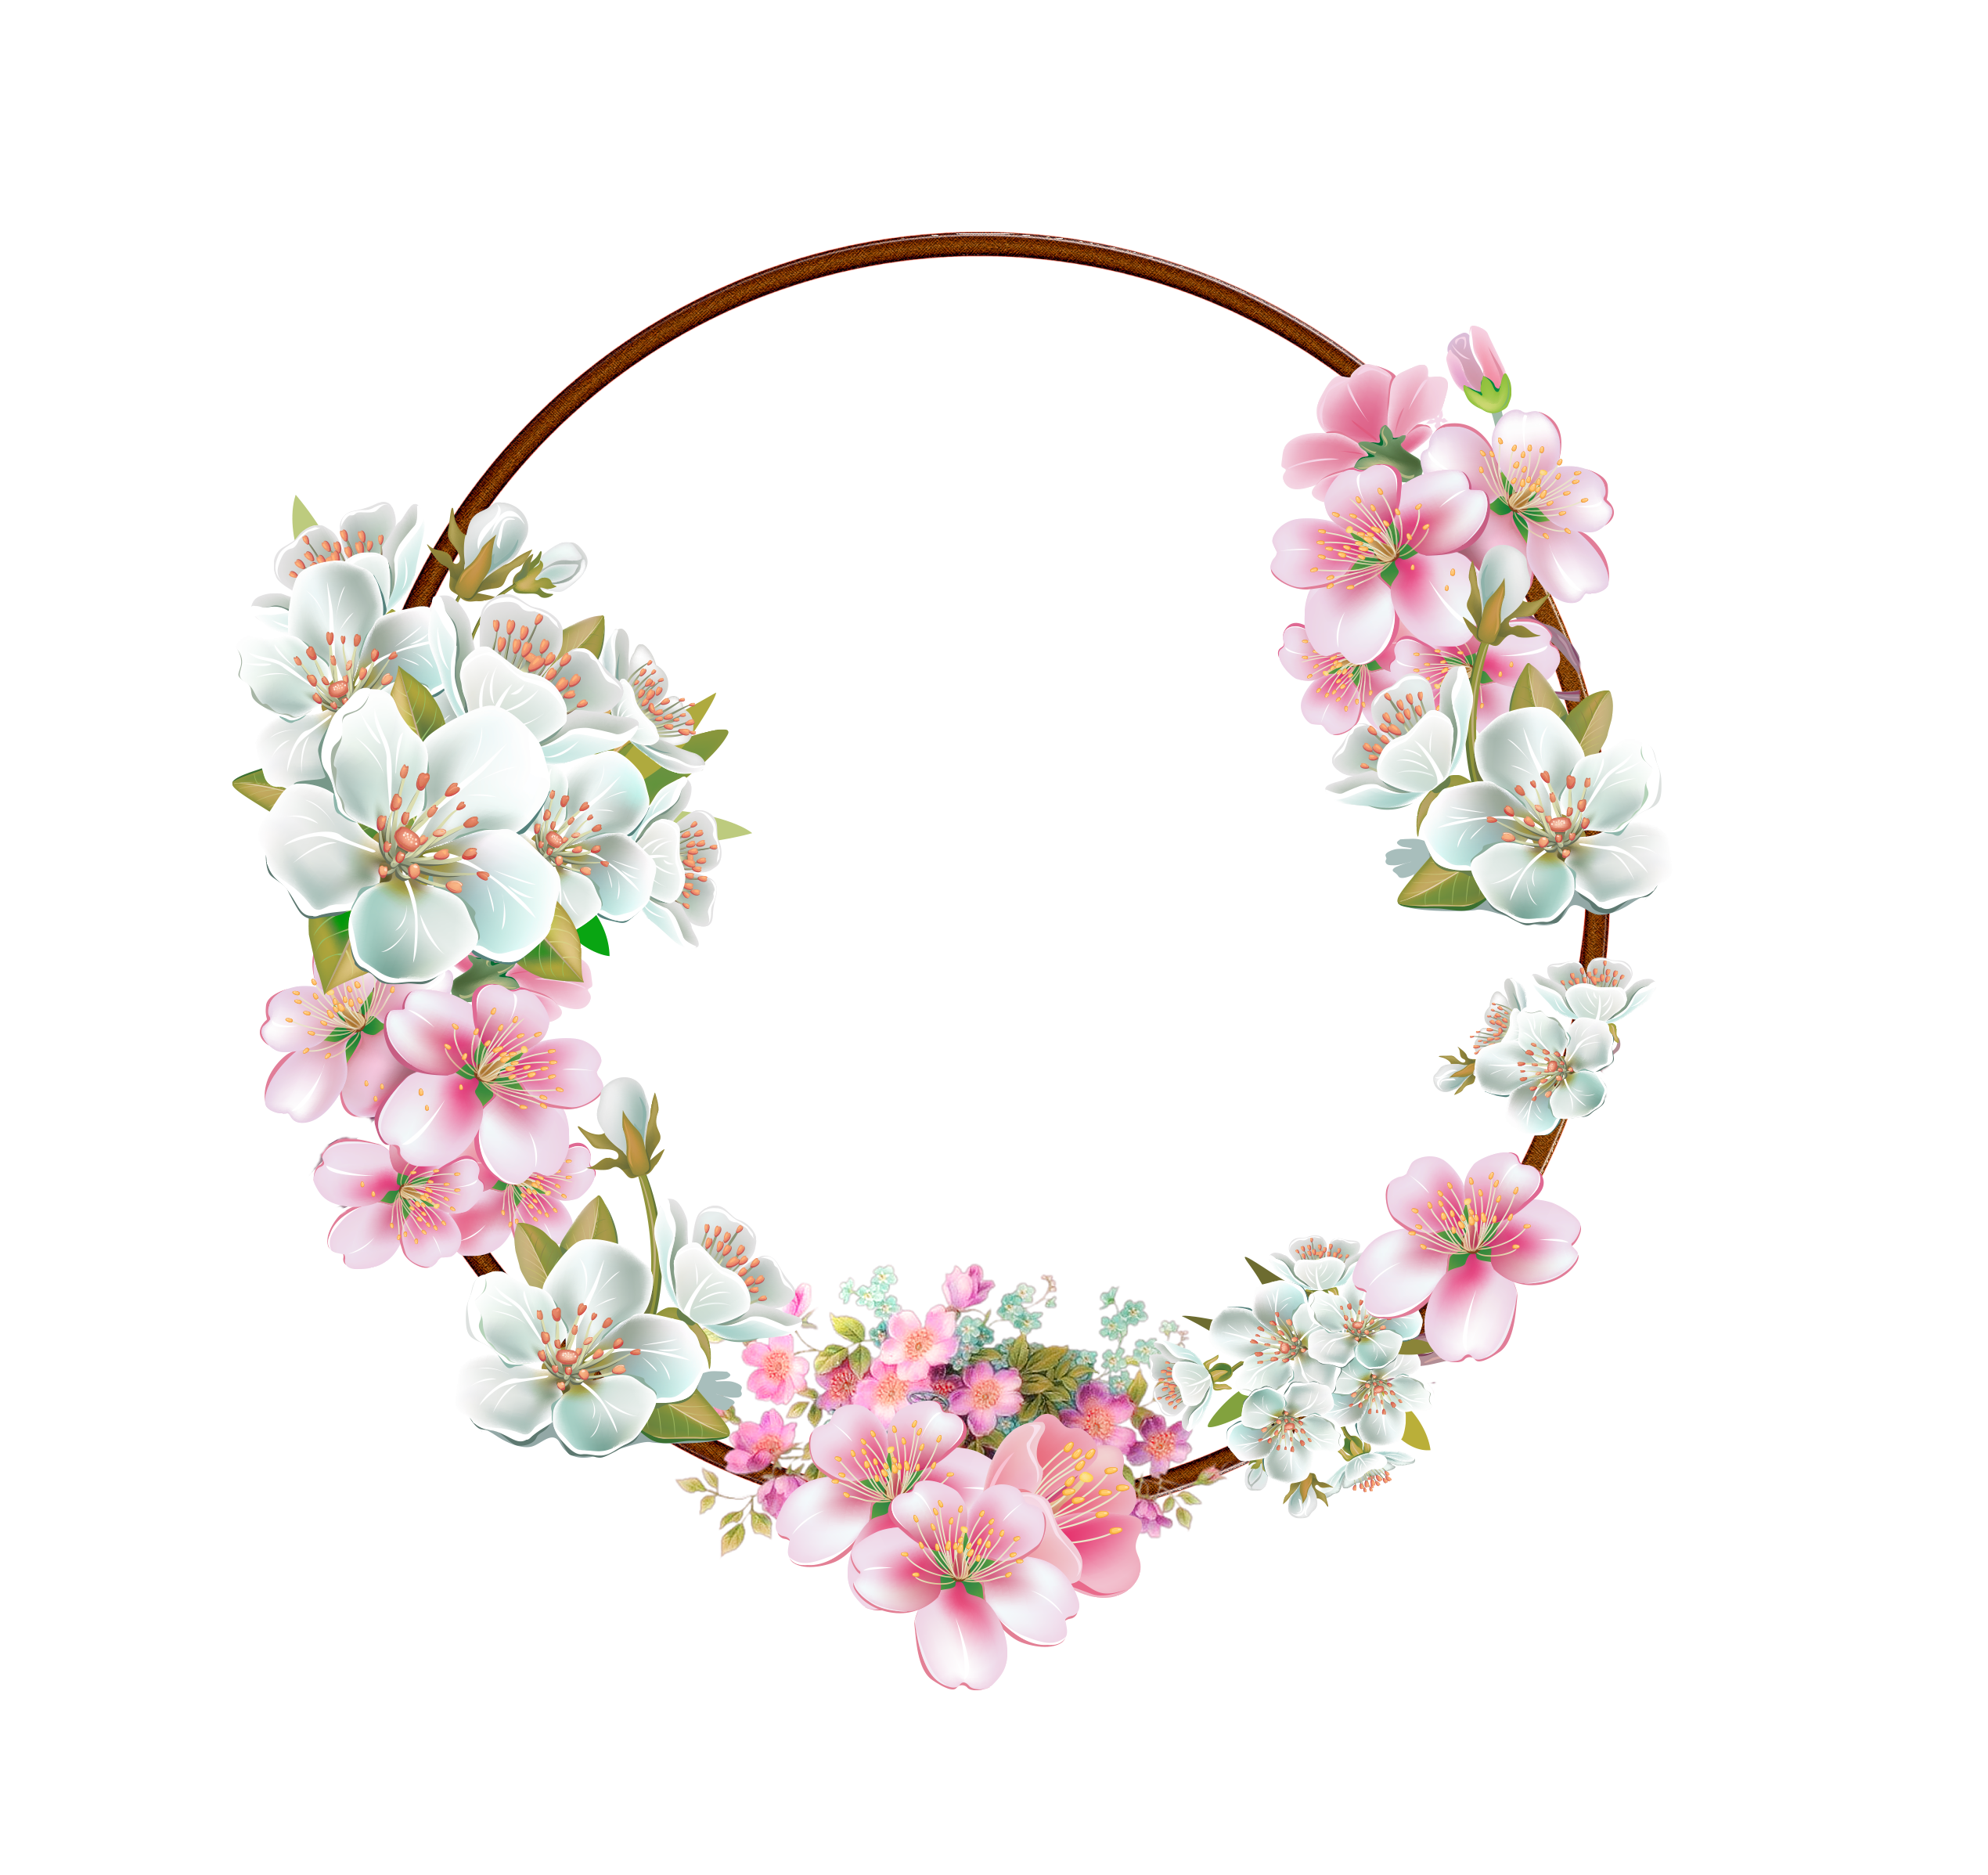 Cherry blossom border png. Flower frame by mysticmorning